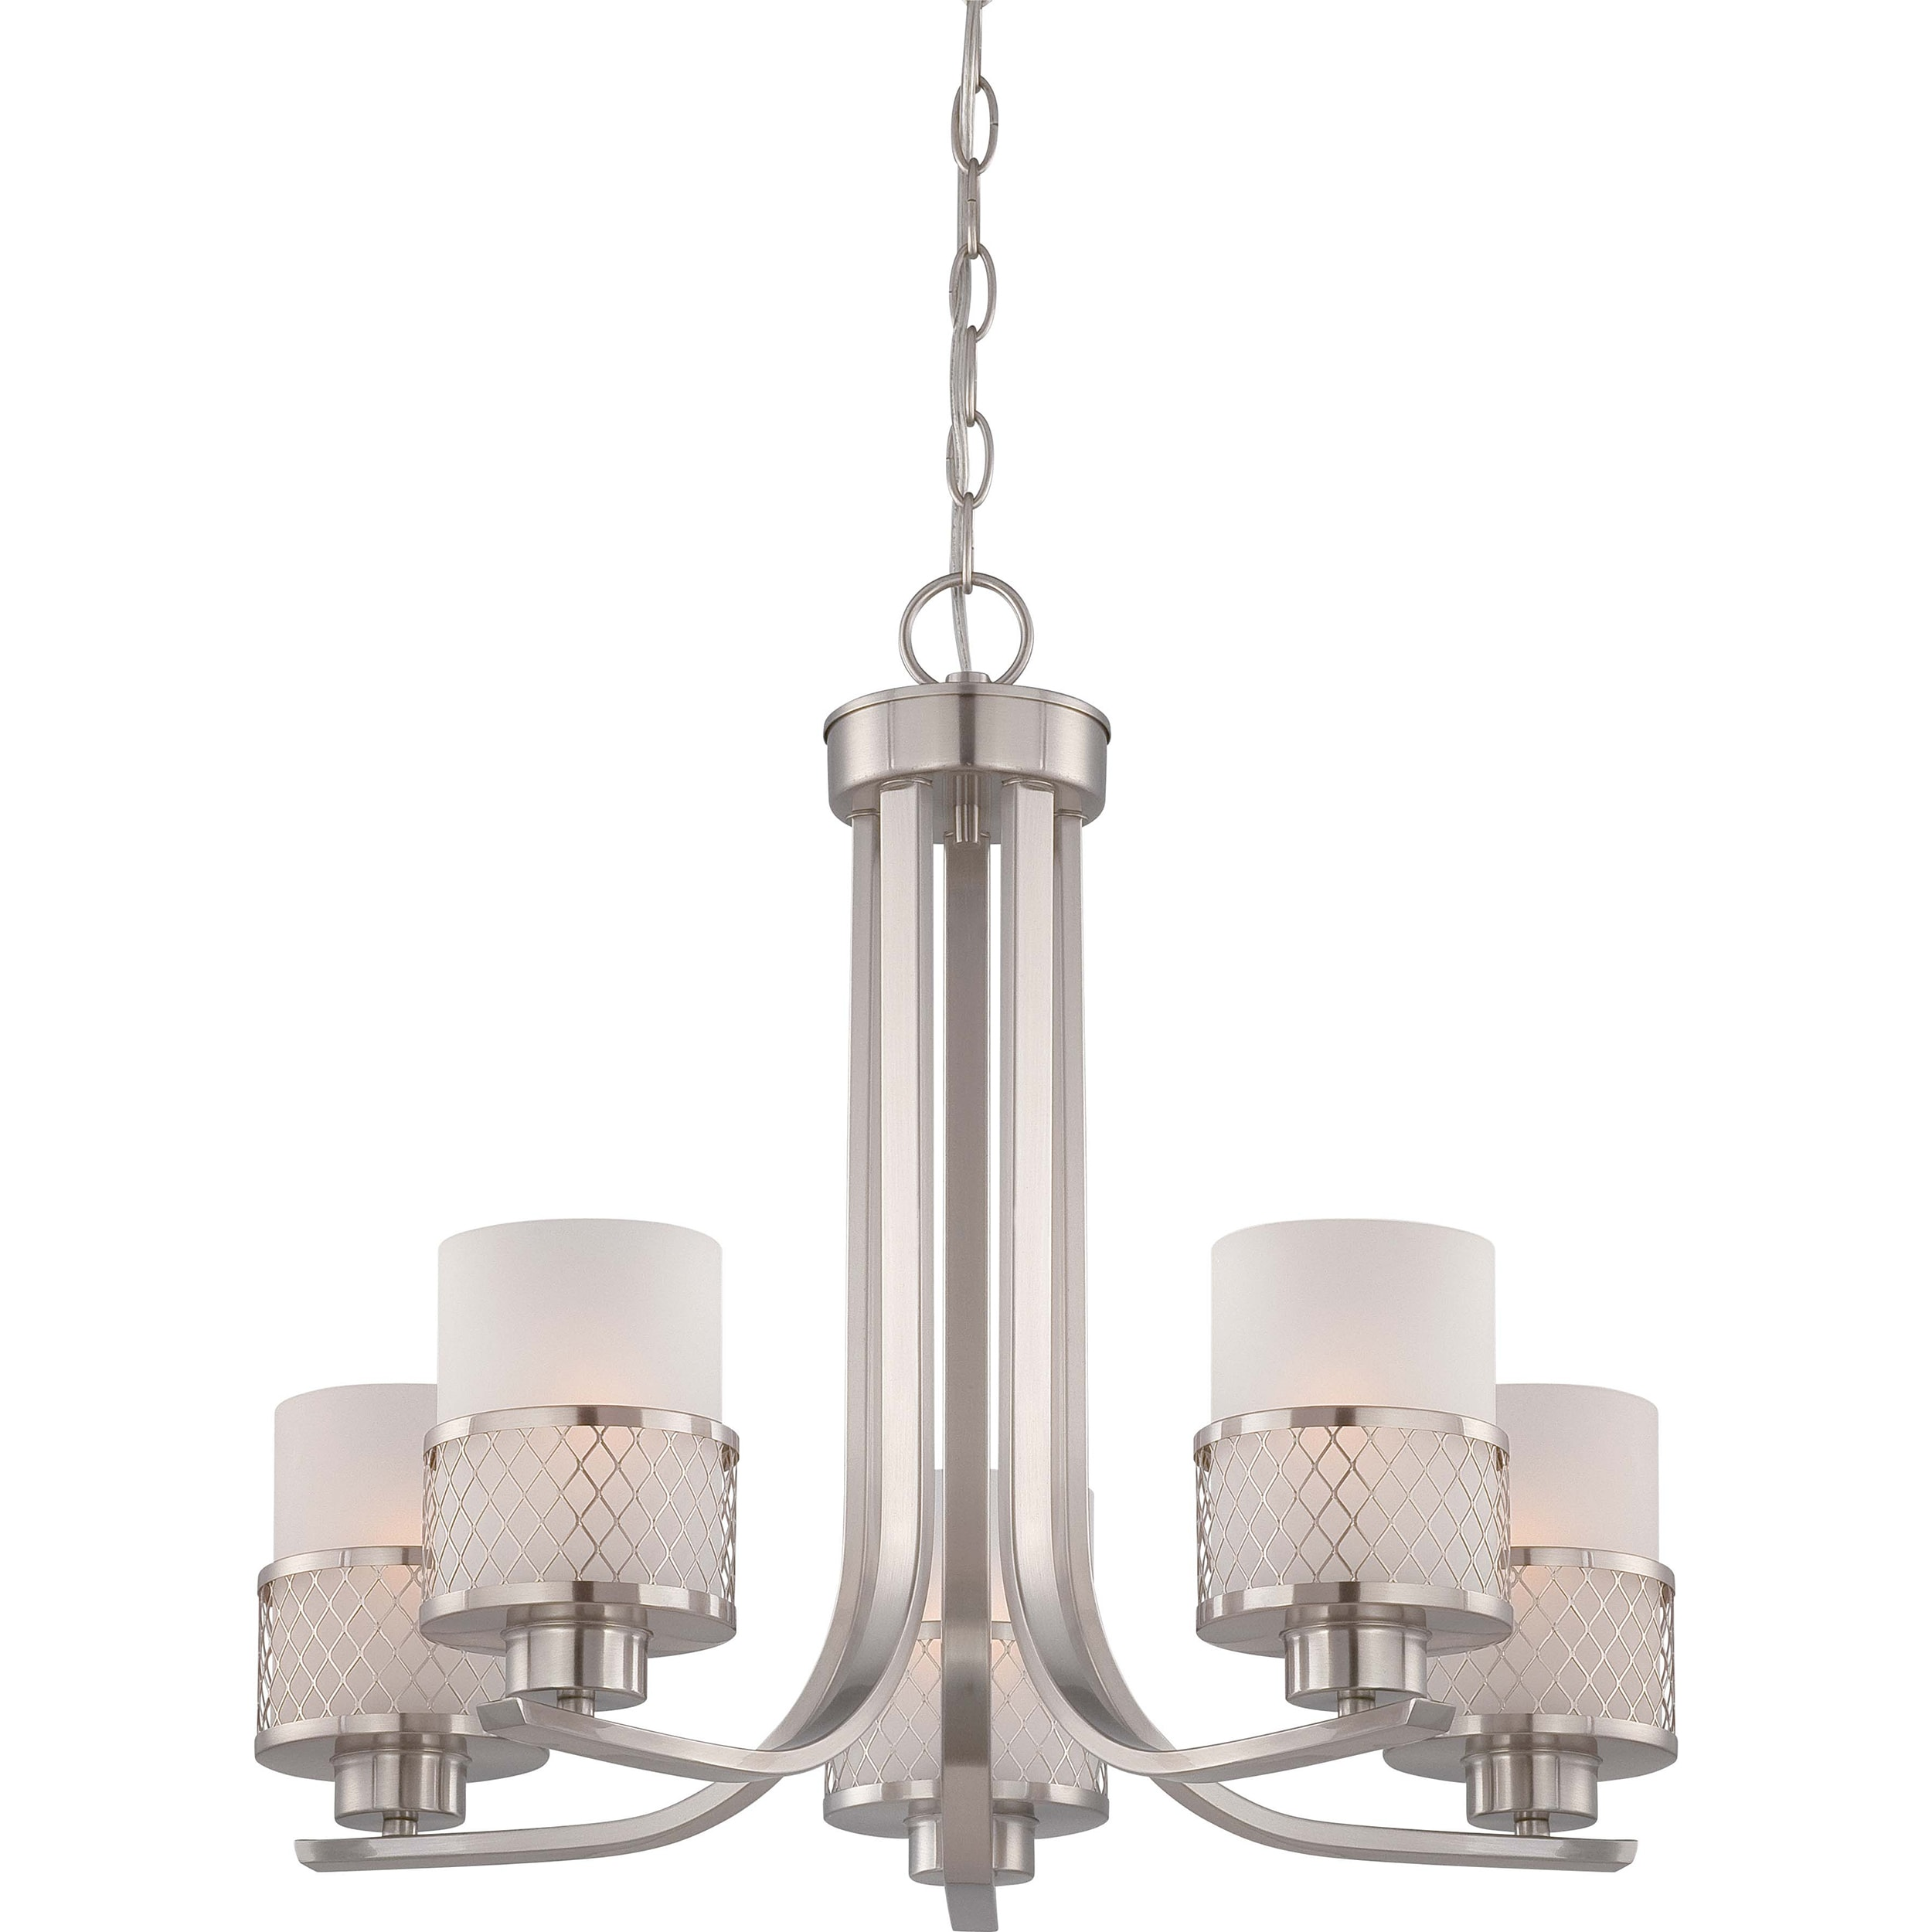 Fusion Nickel and Frosted Glass 5-Light Chandelier